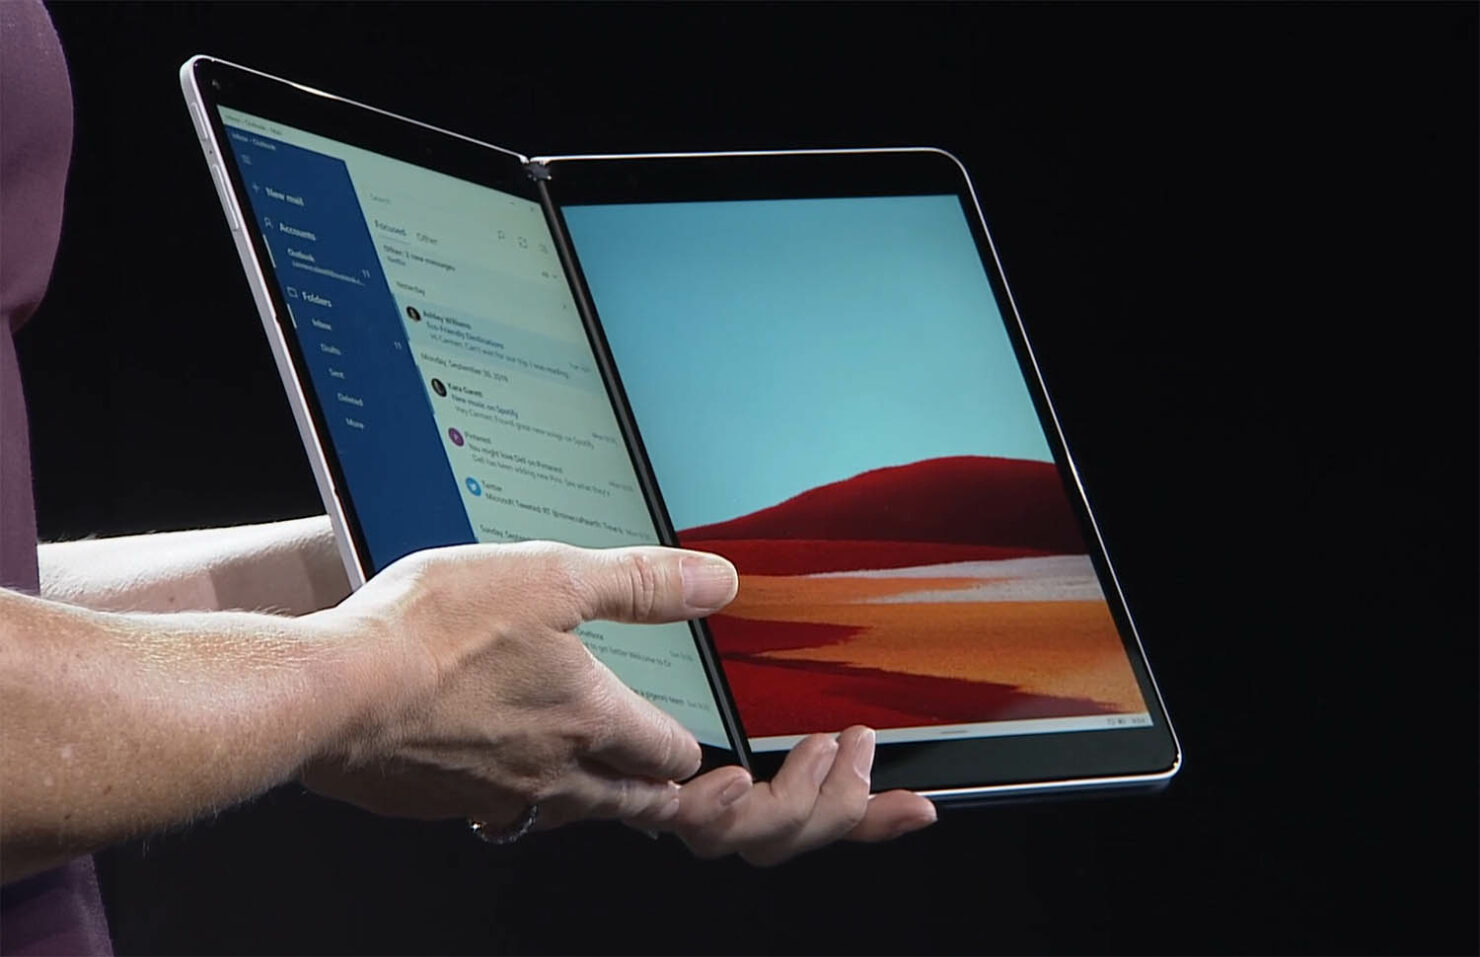 Microsoft Has Delayed Development on the Surface Neo, Giving Rise to Rumors That the Dual-Screen Device May Be Scrapped